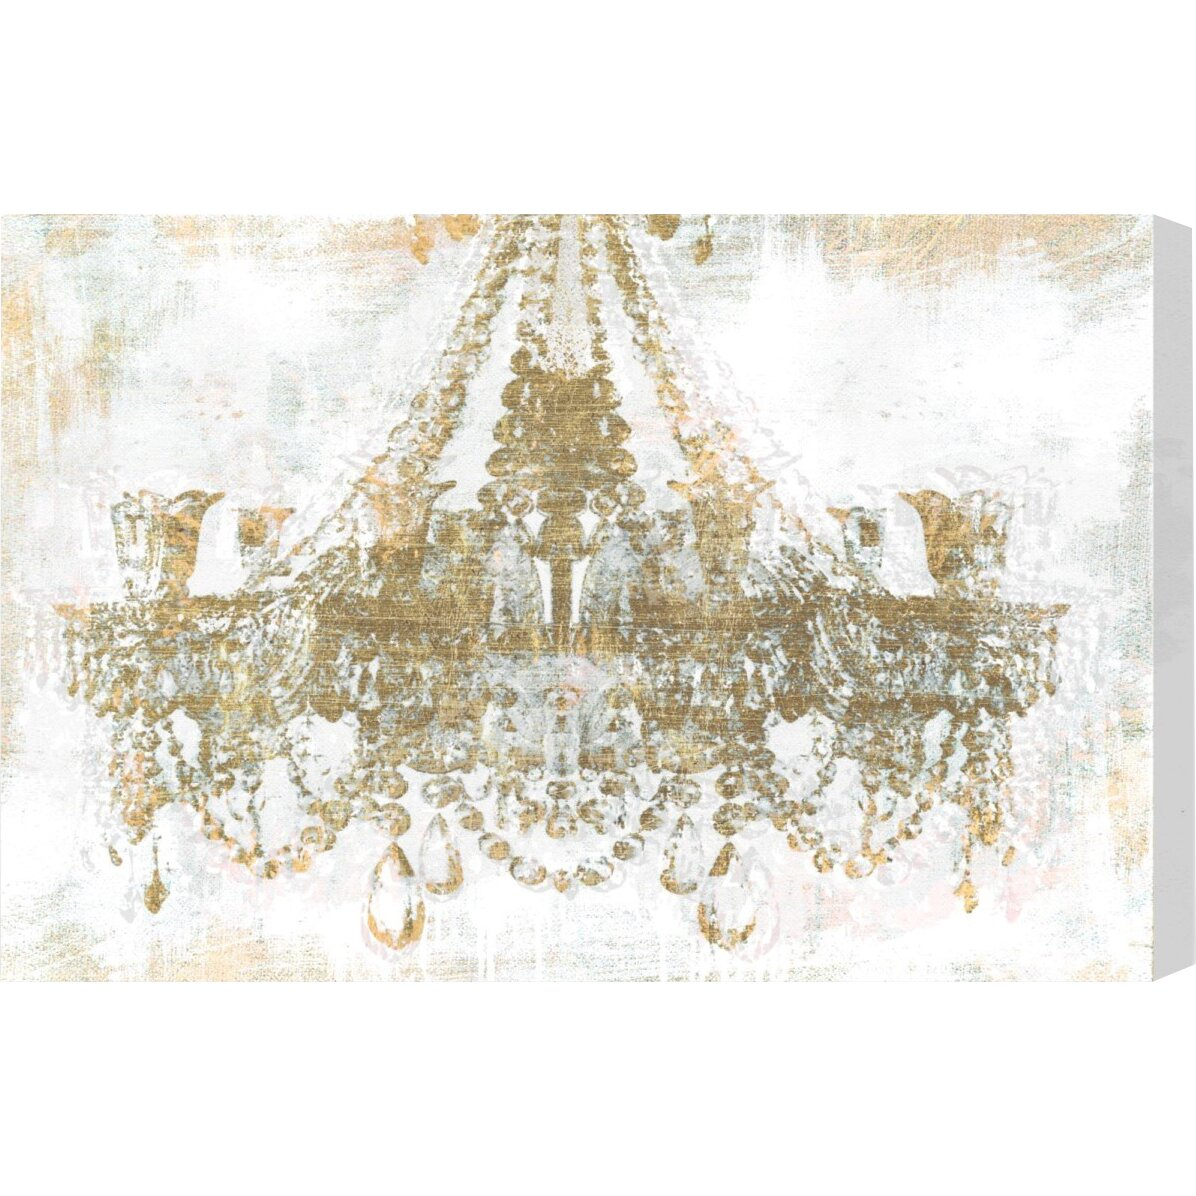 Oliver gal gold diamonds faded graphic art on canvas for Gold paintings on canvas